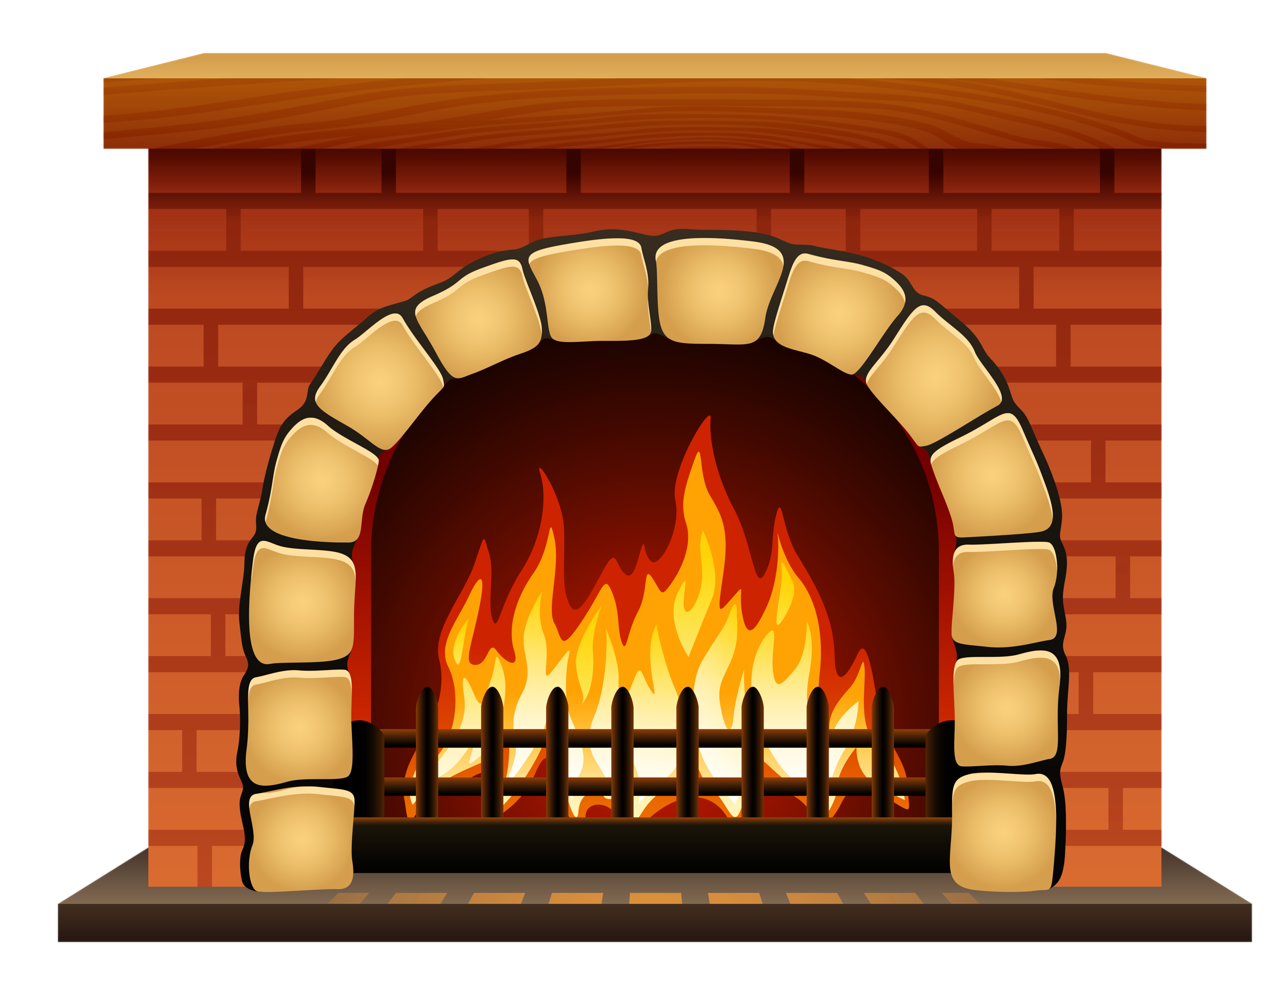 Fireplace clipart outdoor fireplace. Hearth house clip art